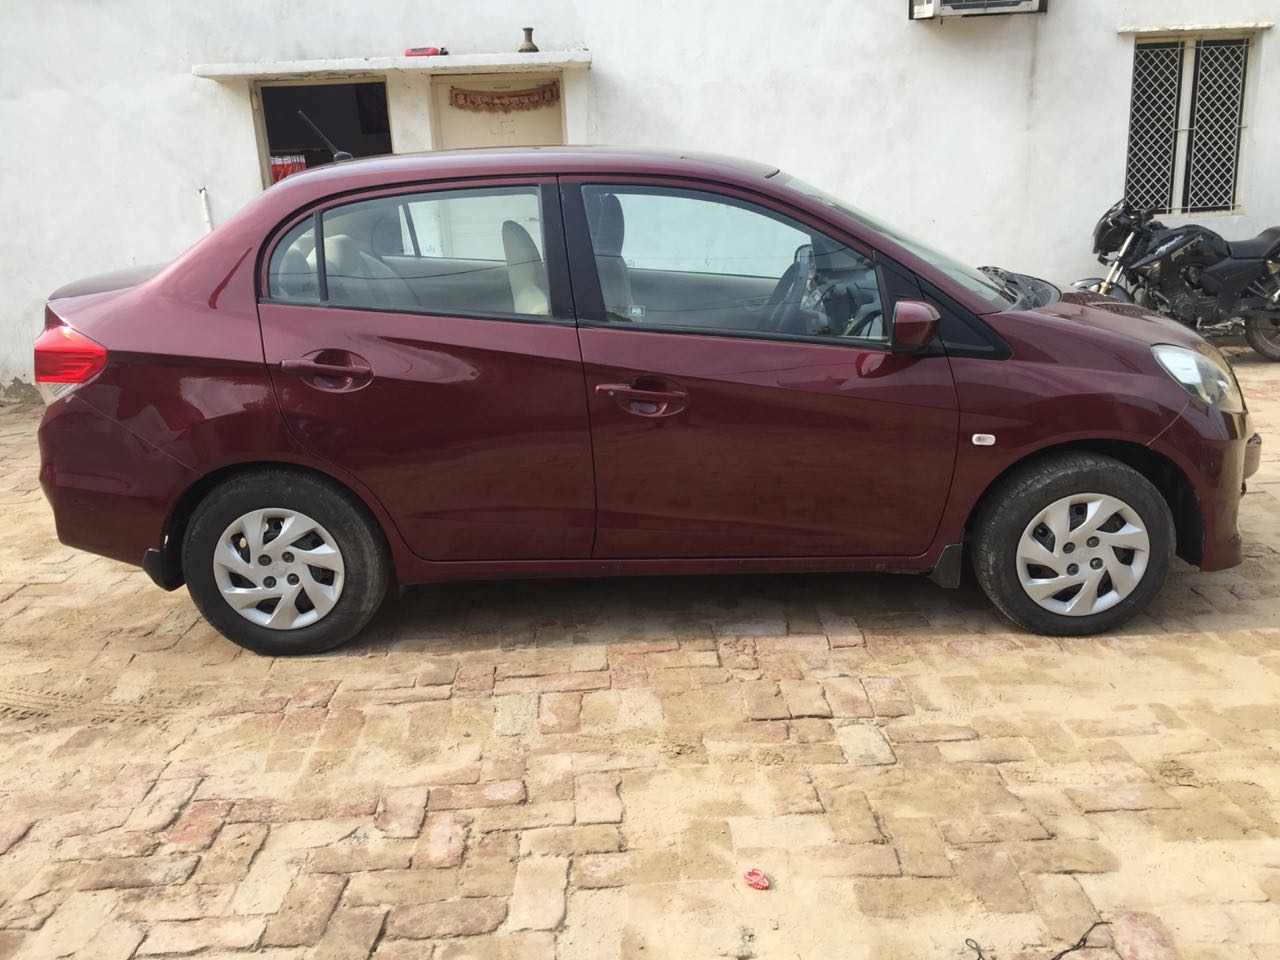 Secondhand Honda Amaze-SMT car in Dwarka and Uttam Nagar